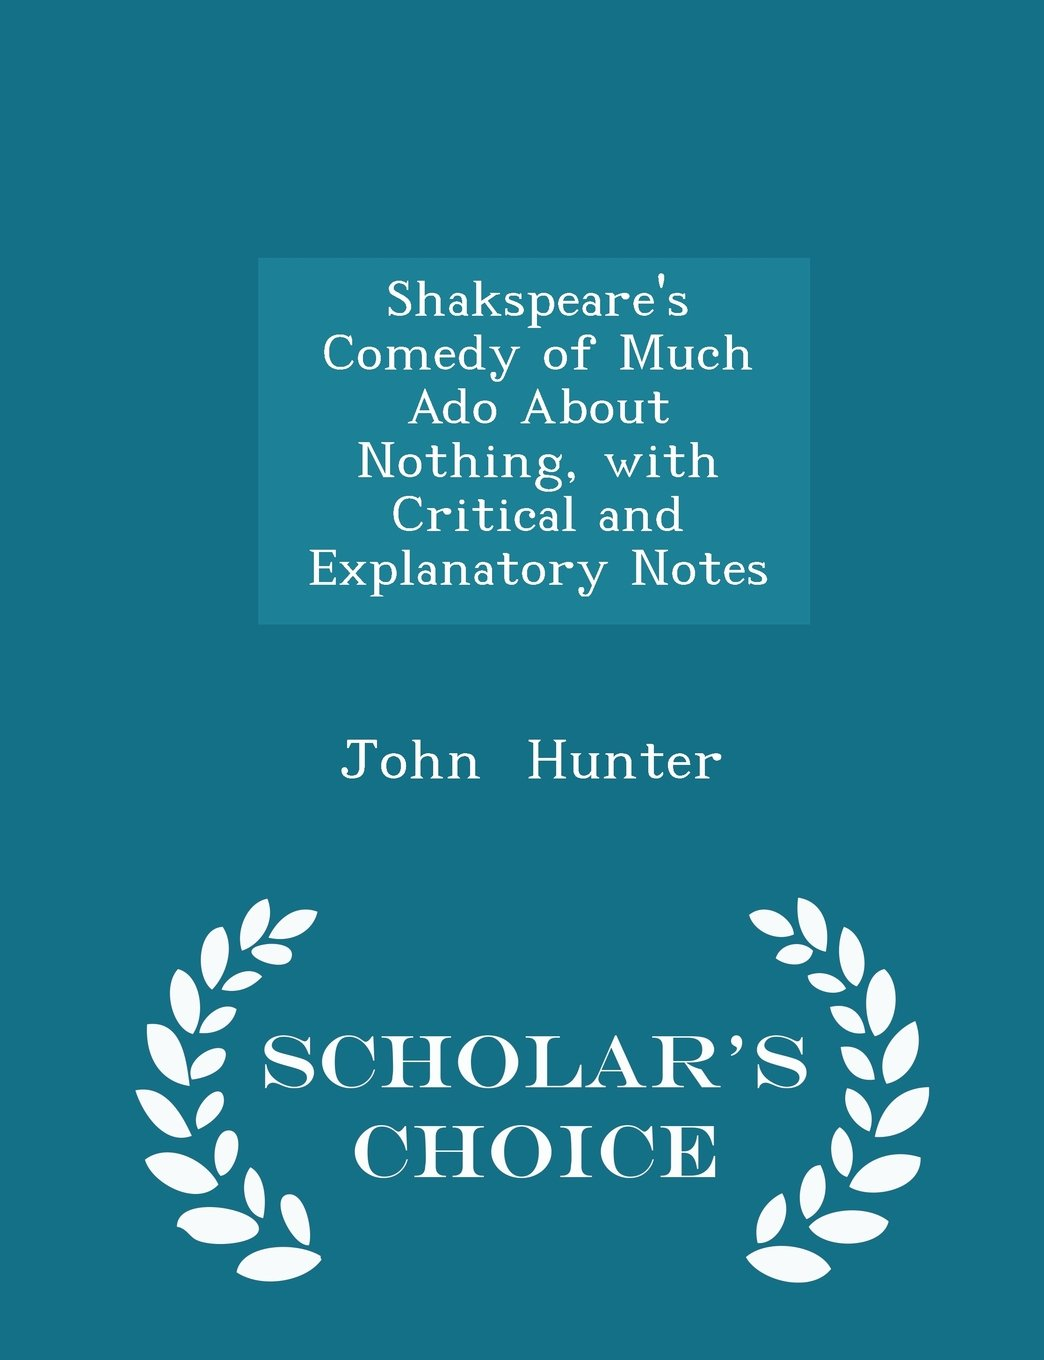 Shakspeare's Comedy of Much Ado About Nothing, with Critical and Explanatory Notes - Scholar's Choice Edition PDF Text fb2 book